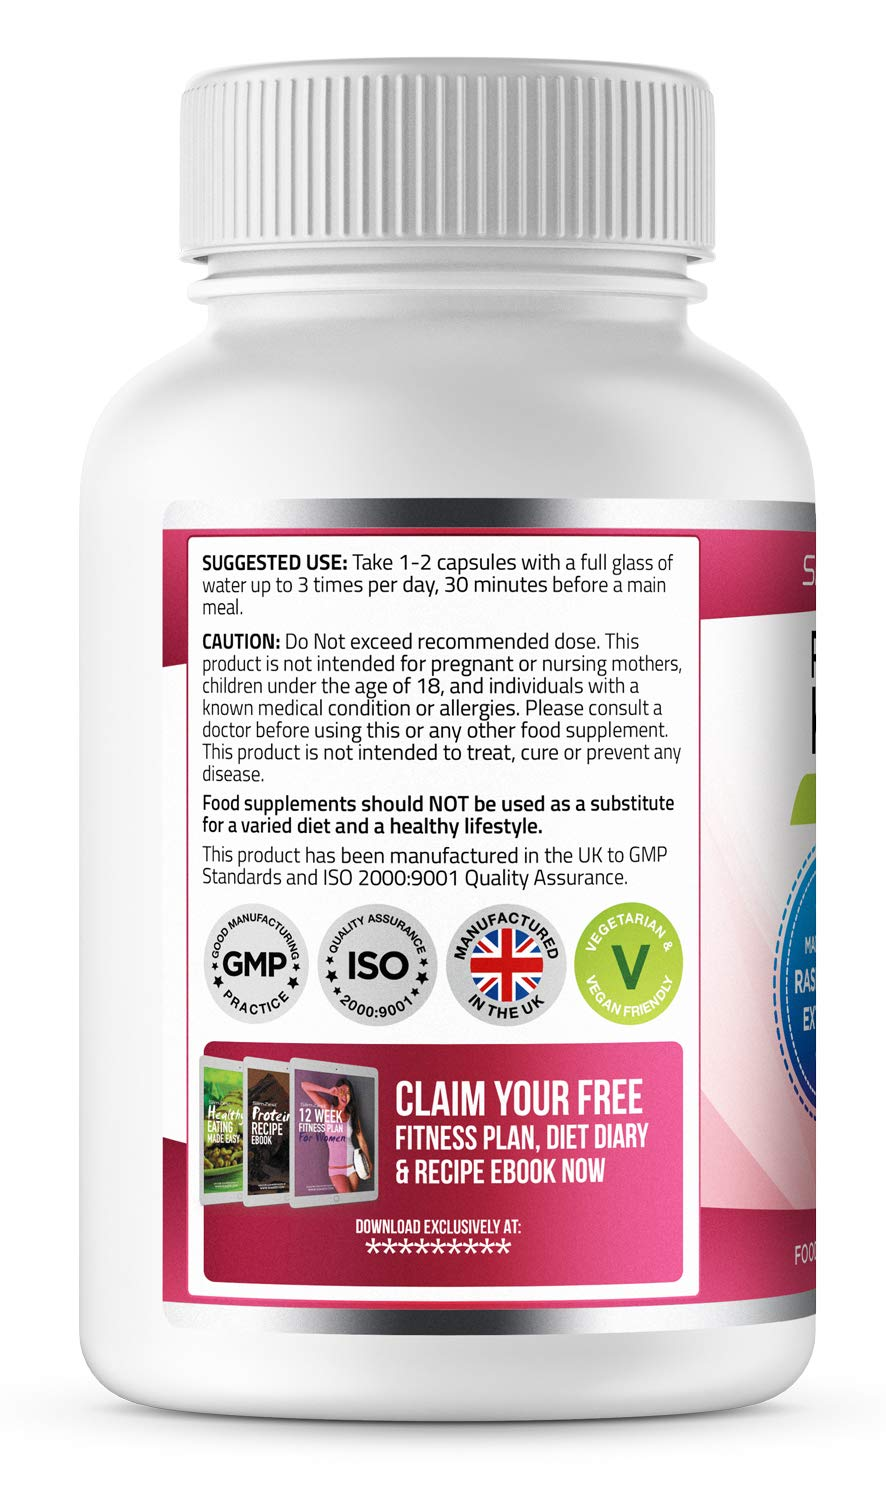 Slimzest Raspberry Ketone Pure Uk Manufactured Diet Pills Vegetarian Vegan Friendly Slimming Pills Top Selling Raspberry Ketone Diet Pills